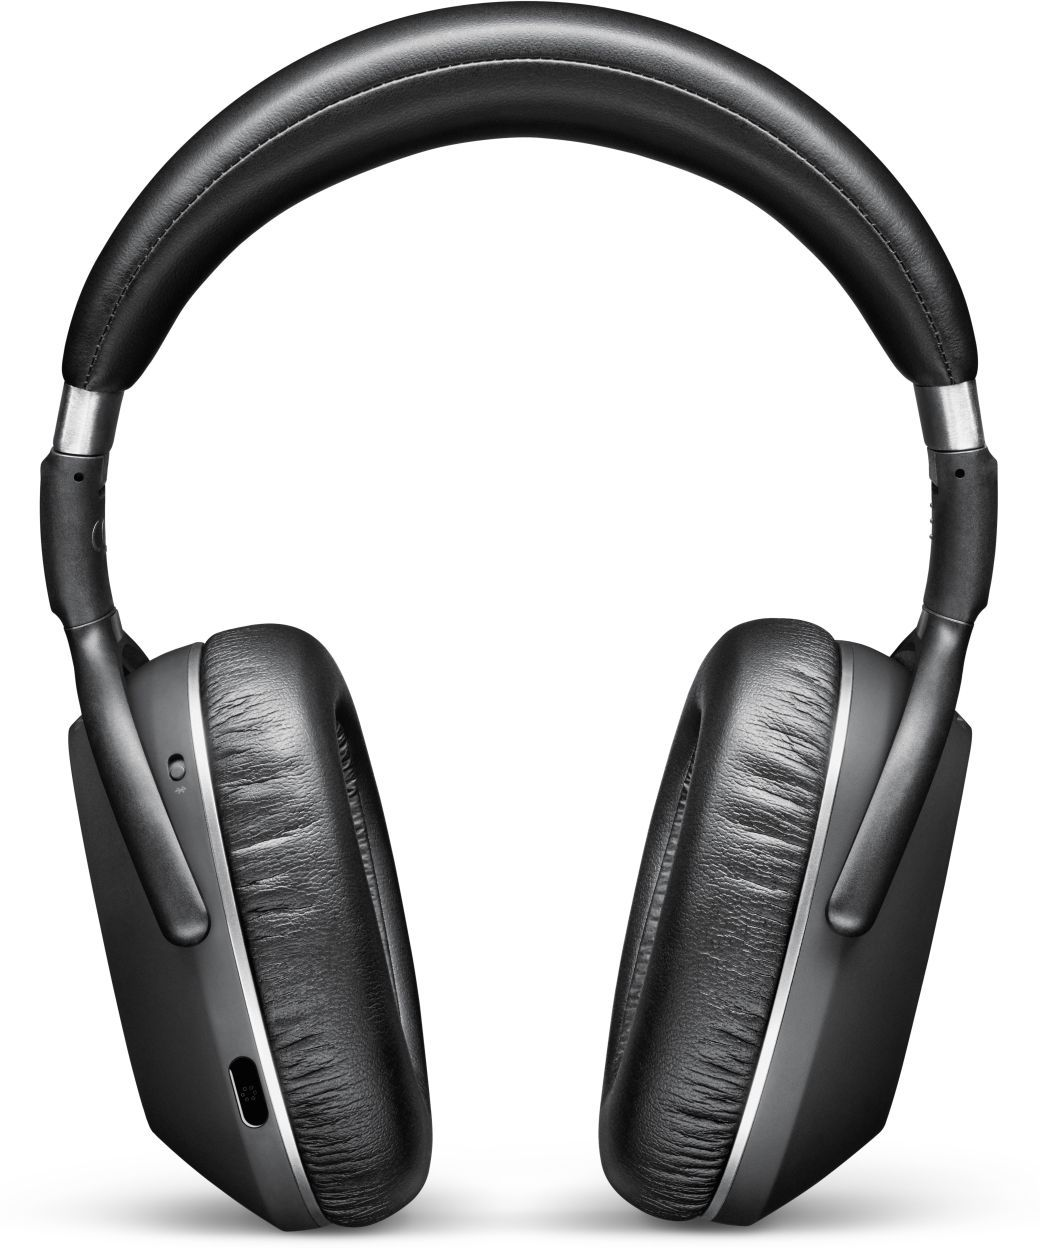 206ce868d7c Sennheiser PXC550 Bluetooth Headset Price in India, Specifications ...